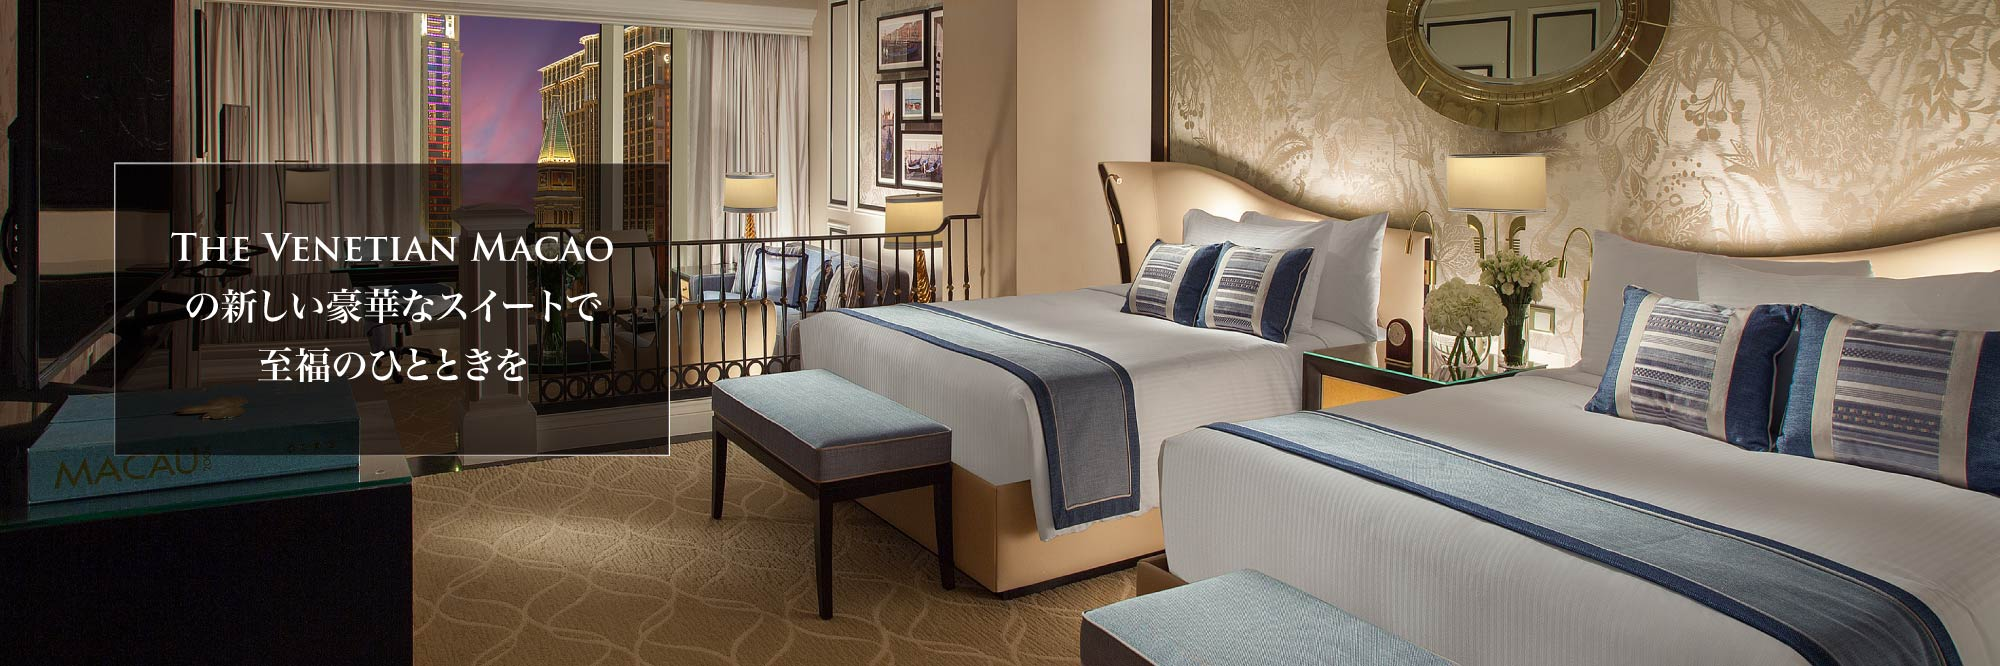 NEW SUITES AT THE VENETIAN MACAO